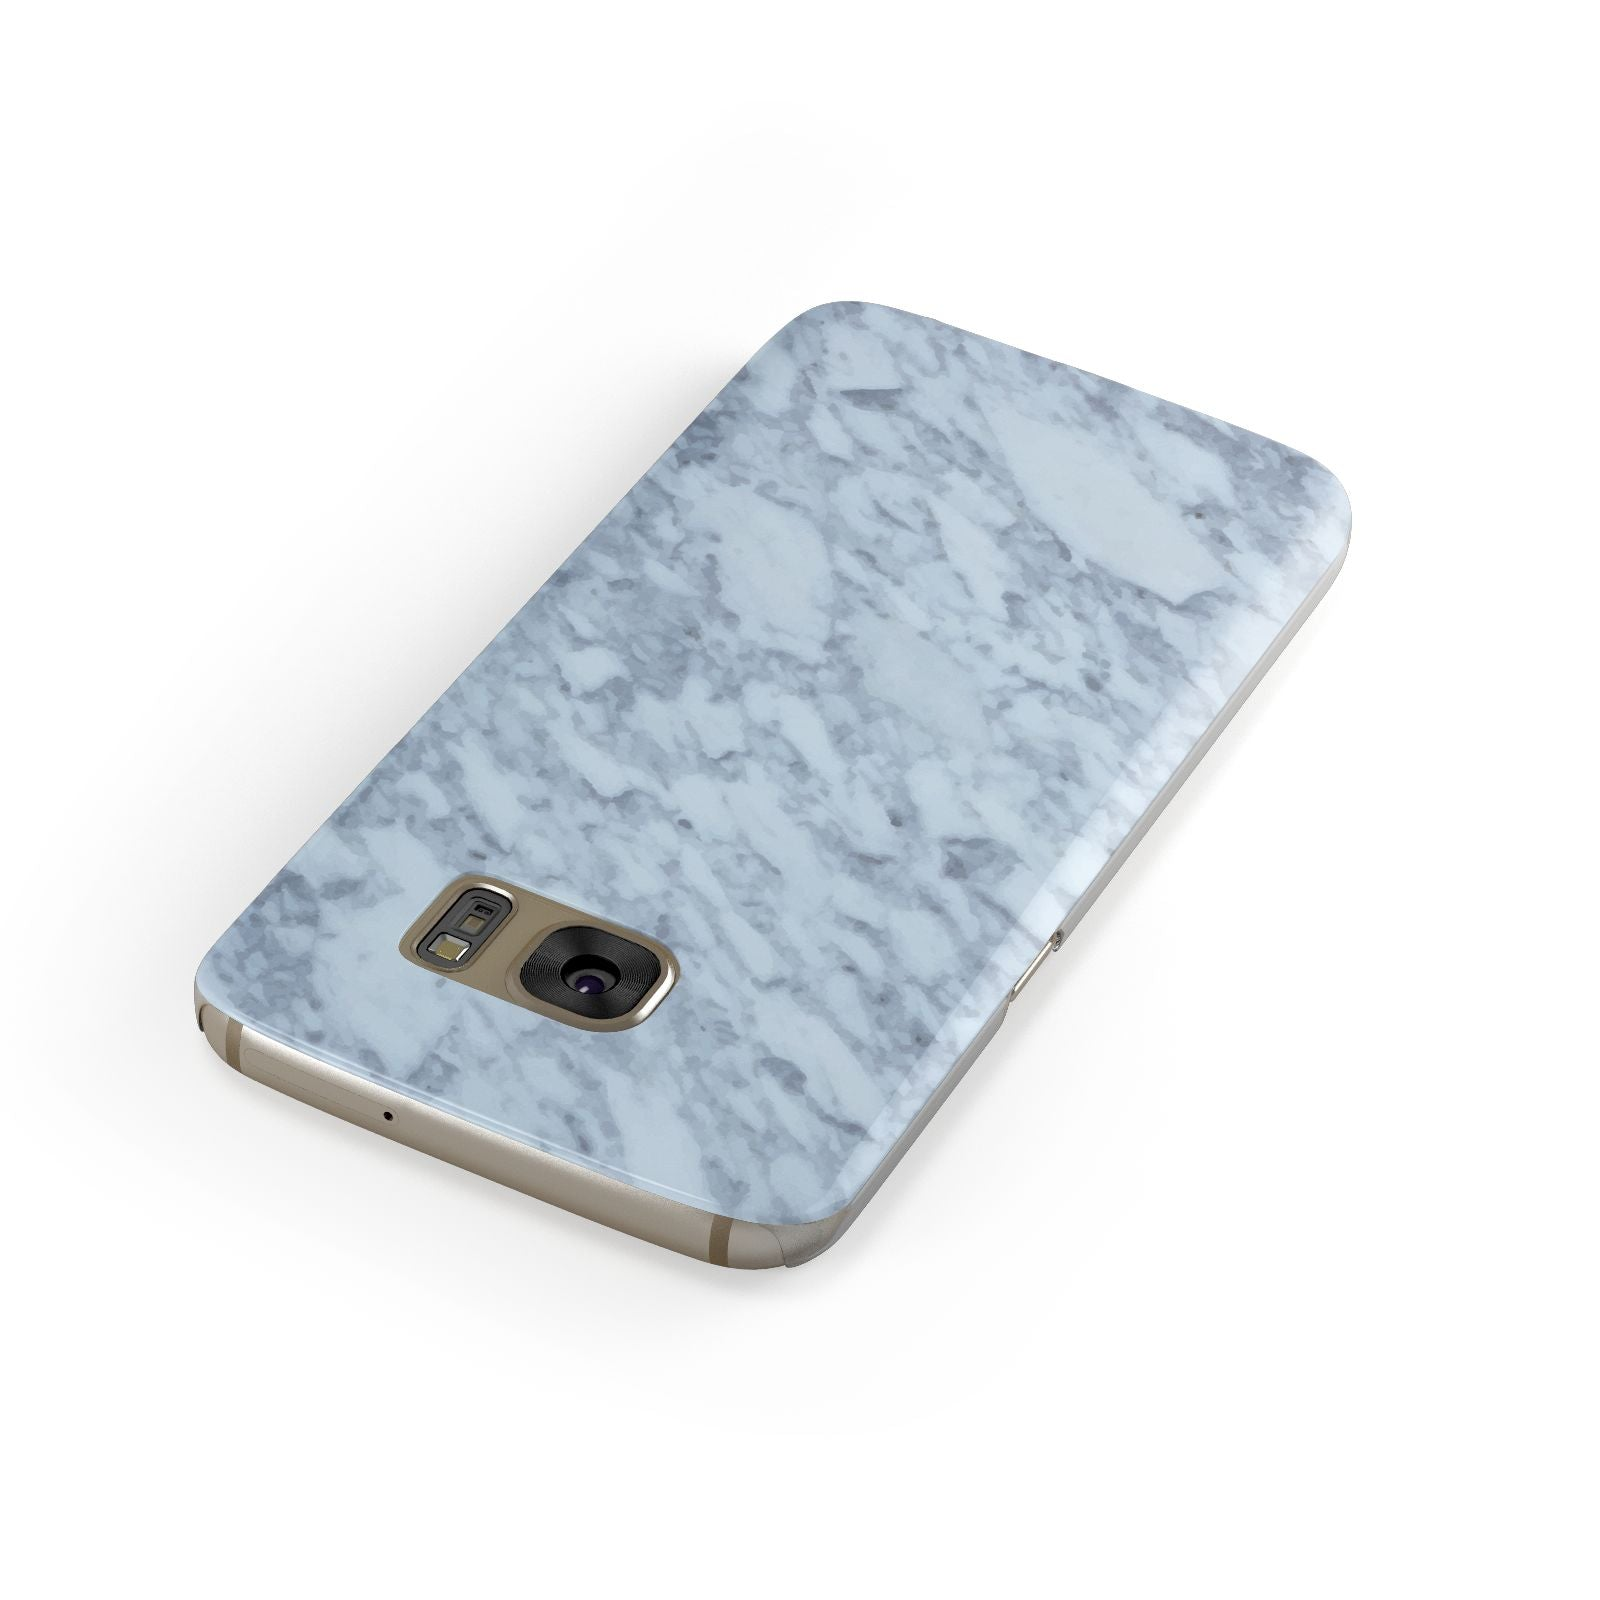 Faux Marble Grey 2 Samsung Galaxy Case Front Close Up